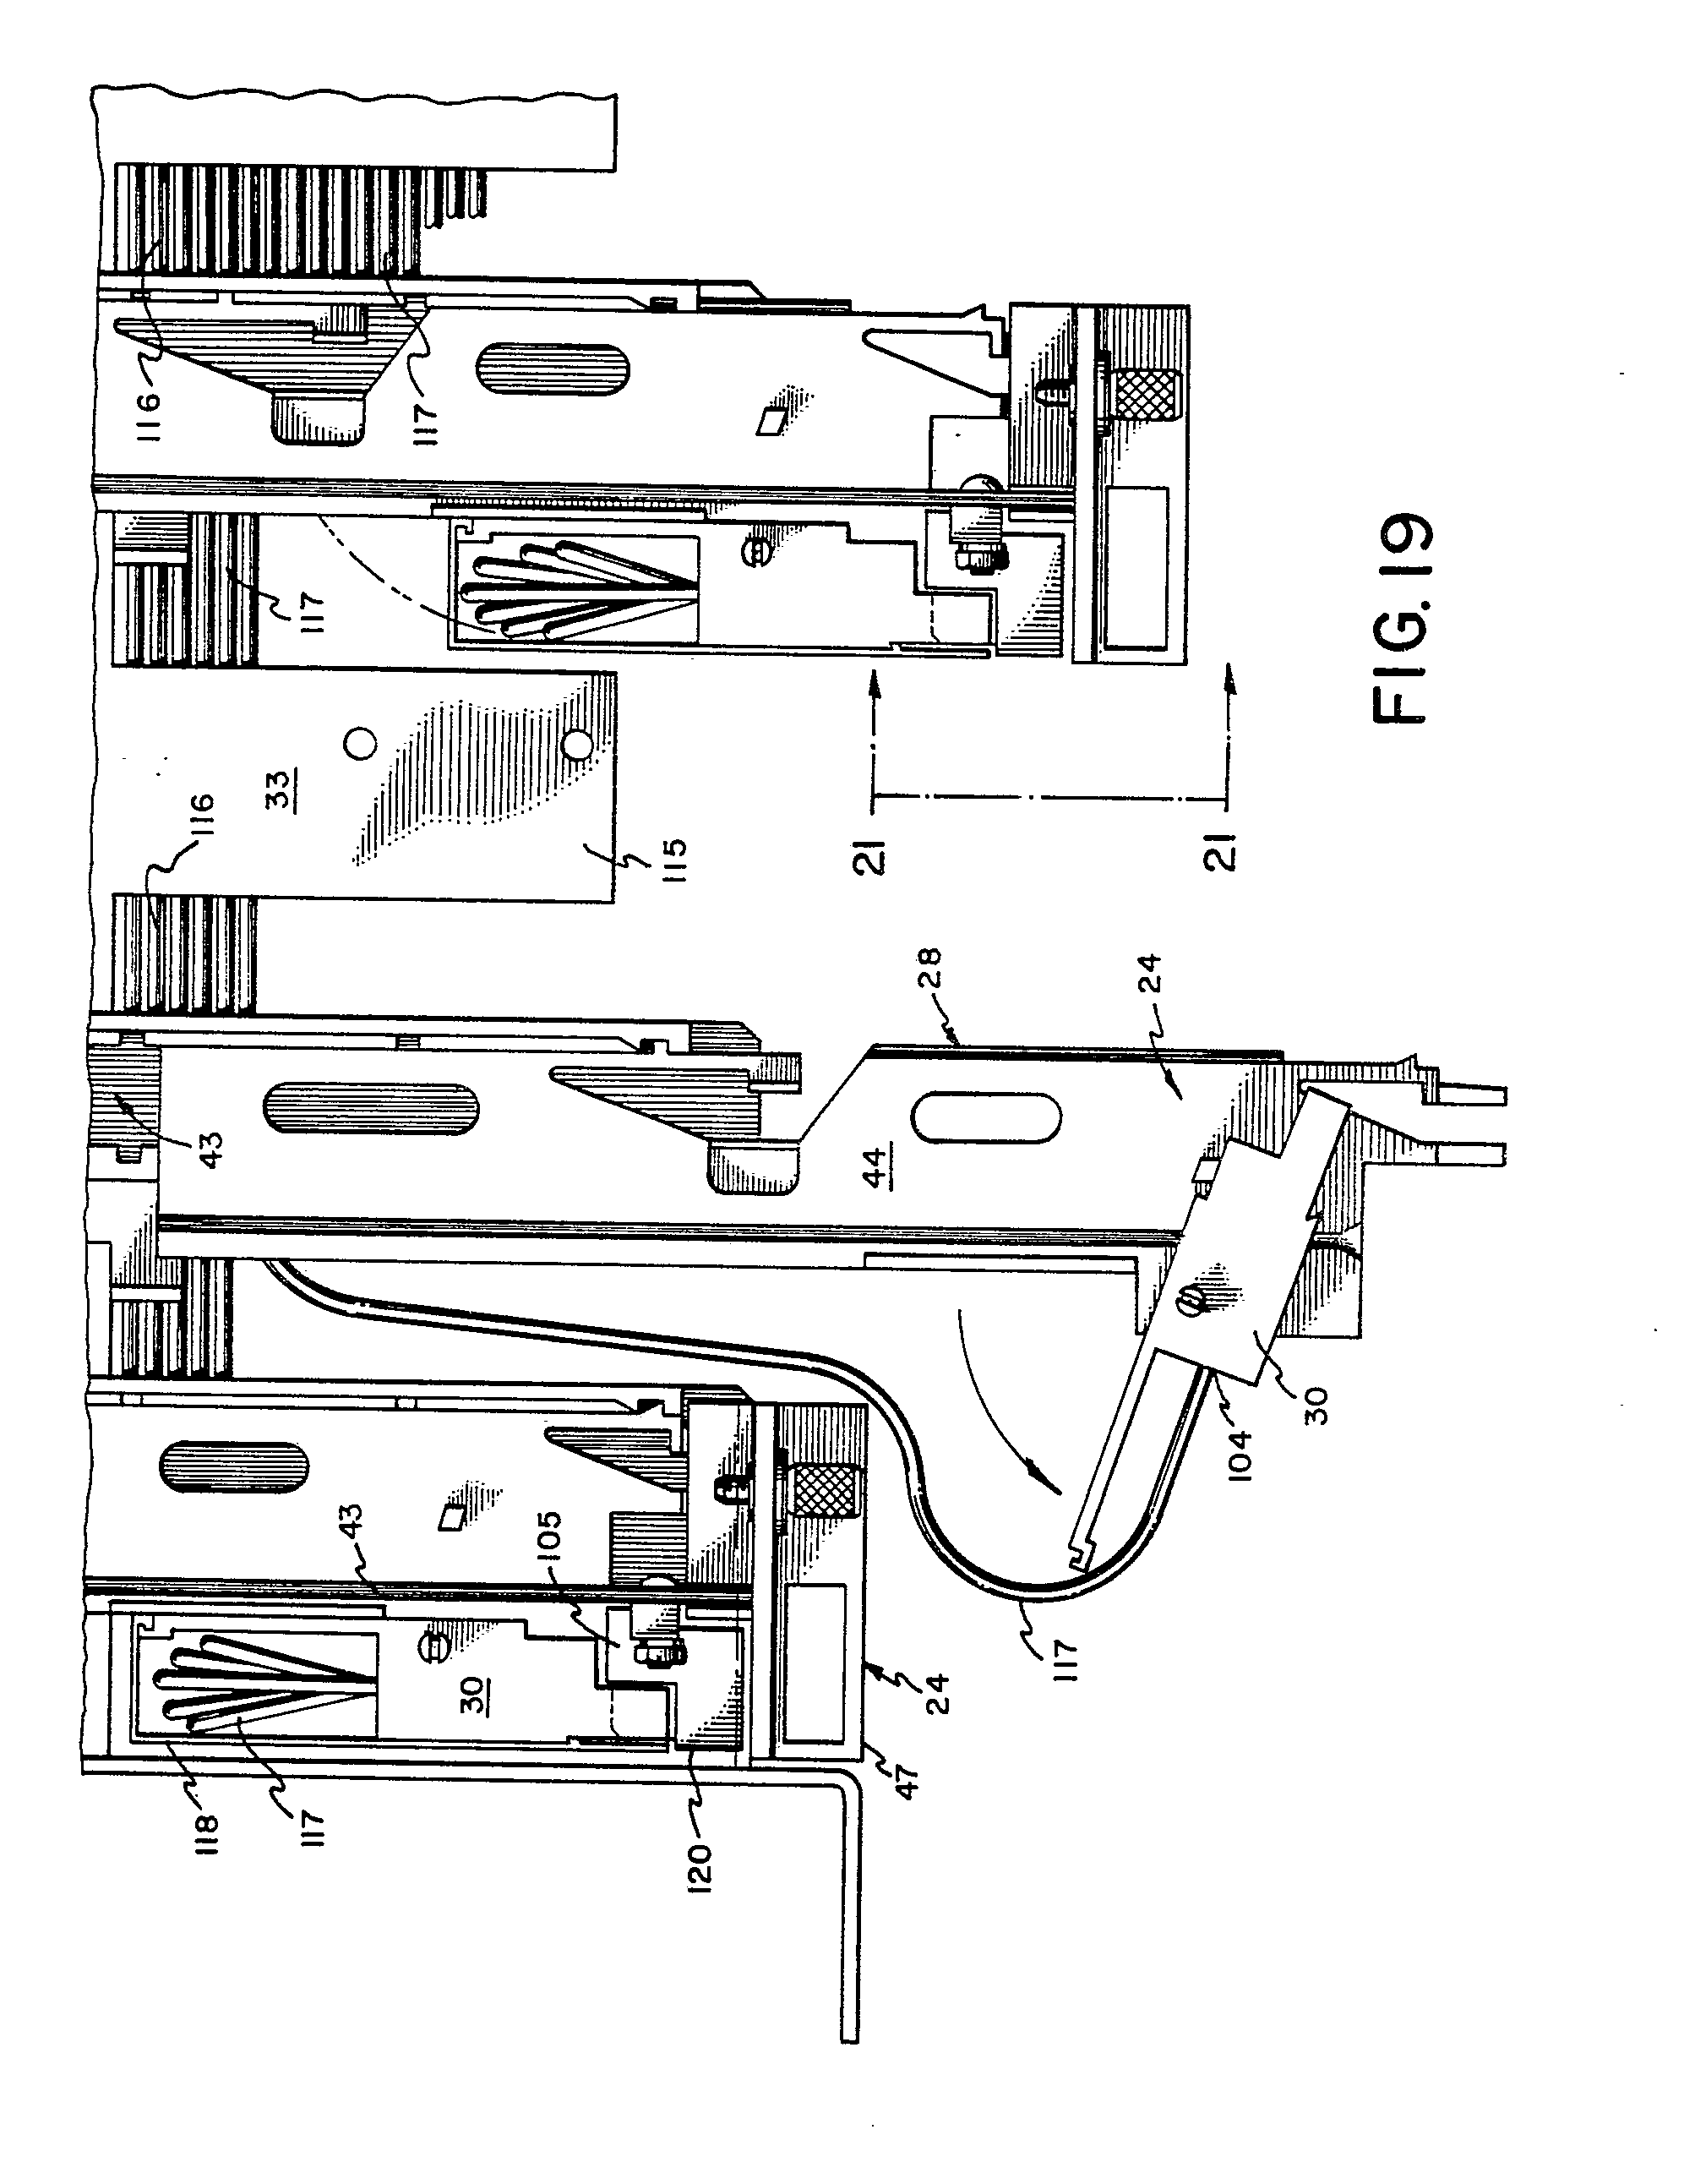 Saturn S Series Wiring Diagrams